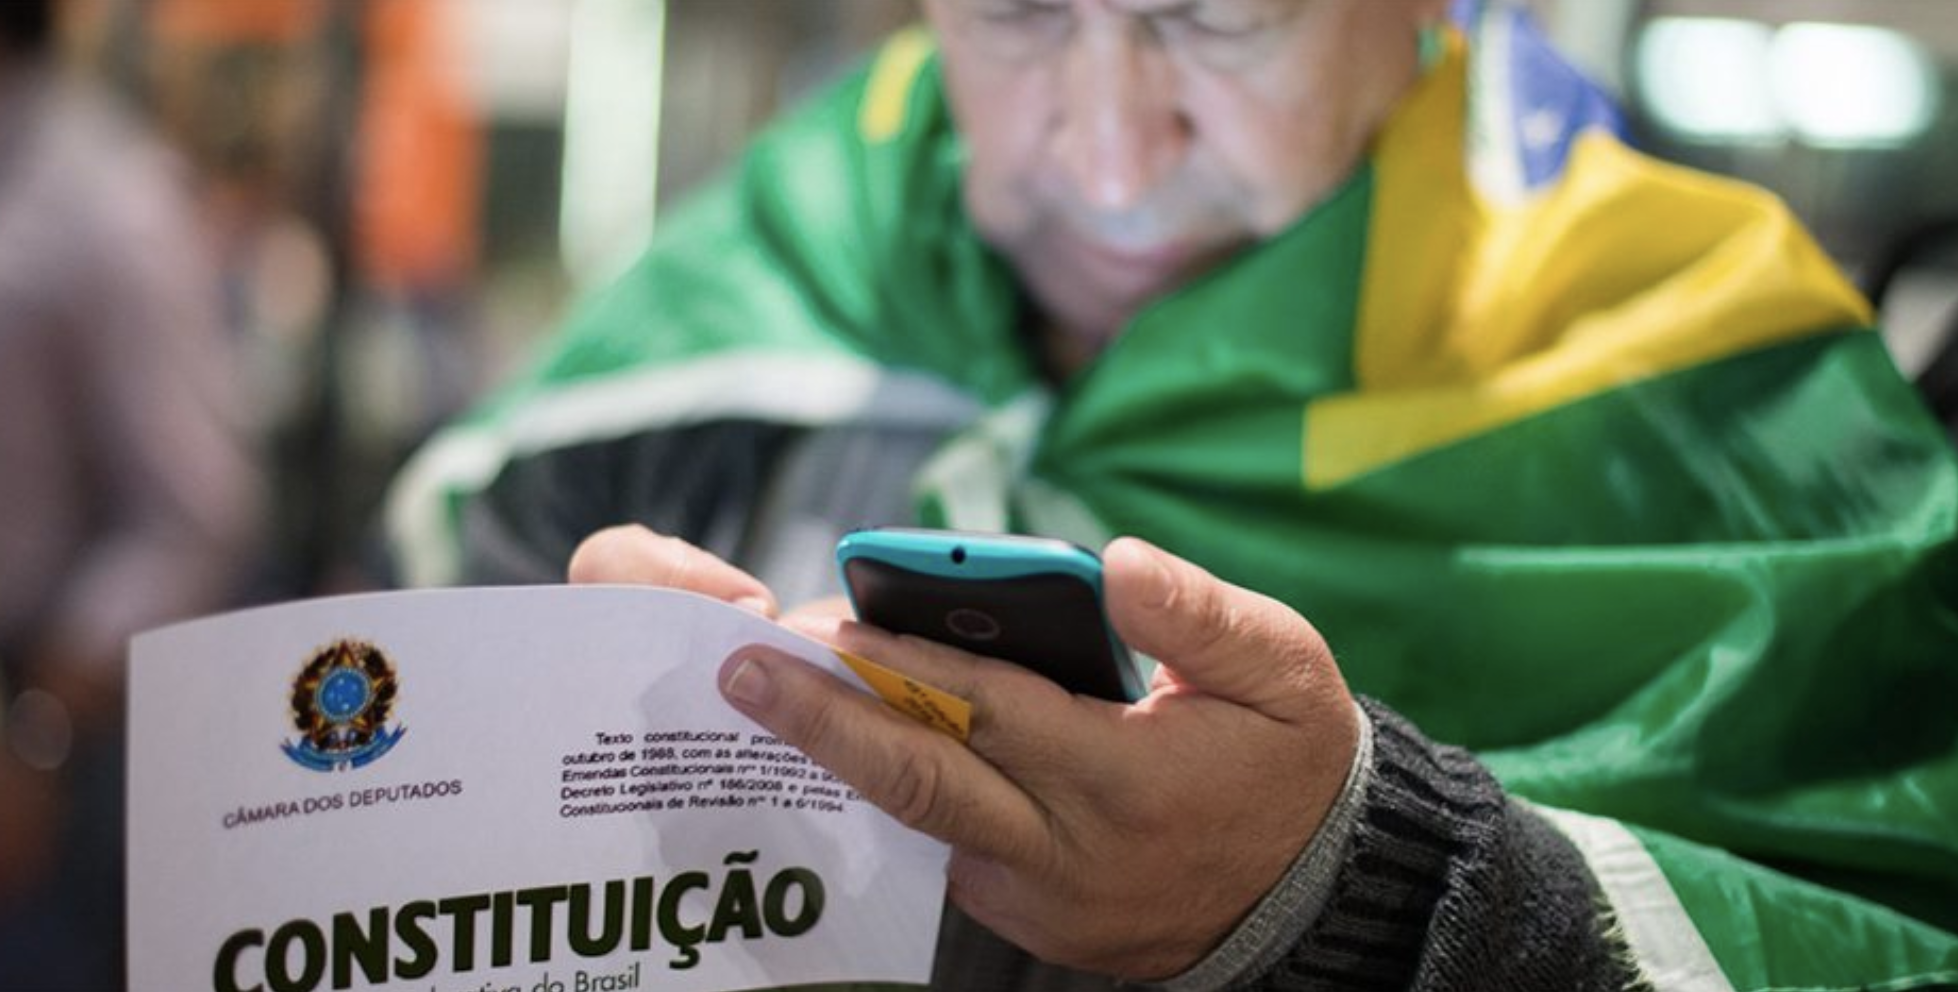 Brazilians appreciate democracy Latinobarómetro stats